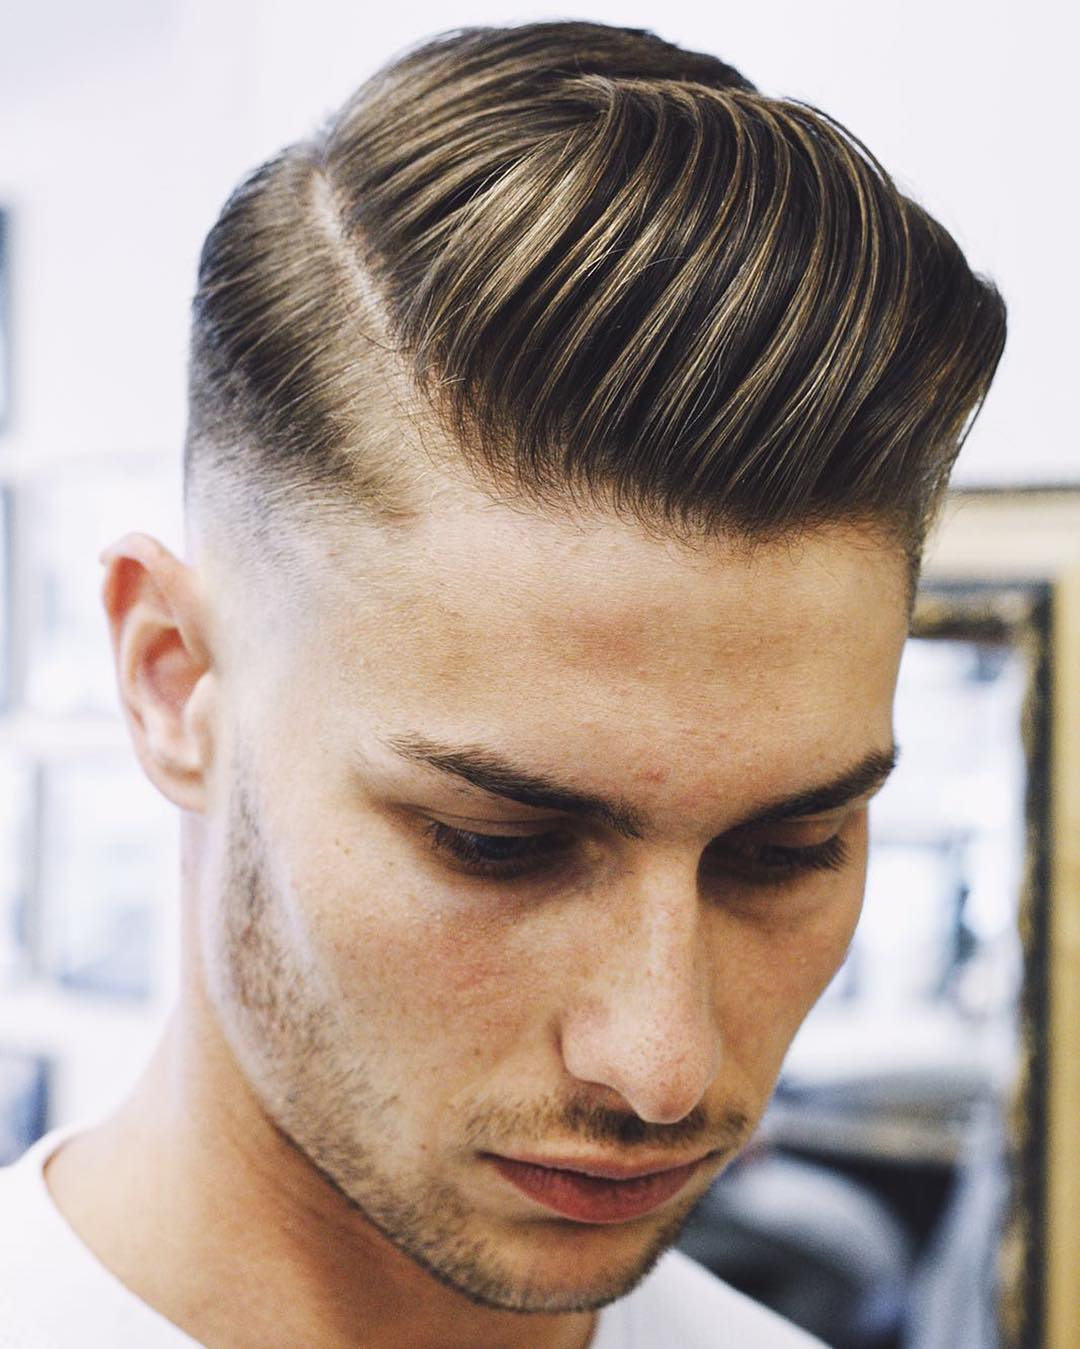 100 Men S Hairstyles Haircuts For Men 2021 Update